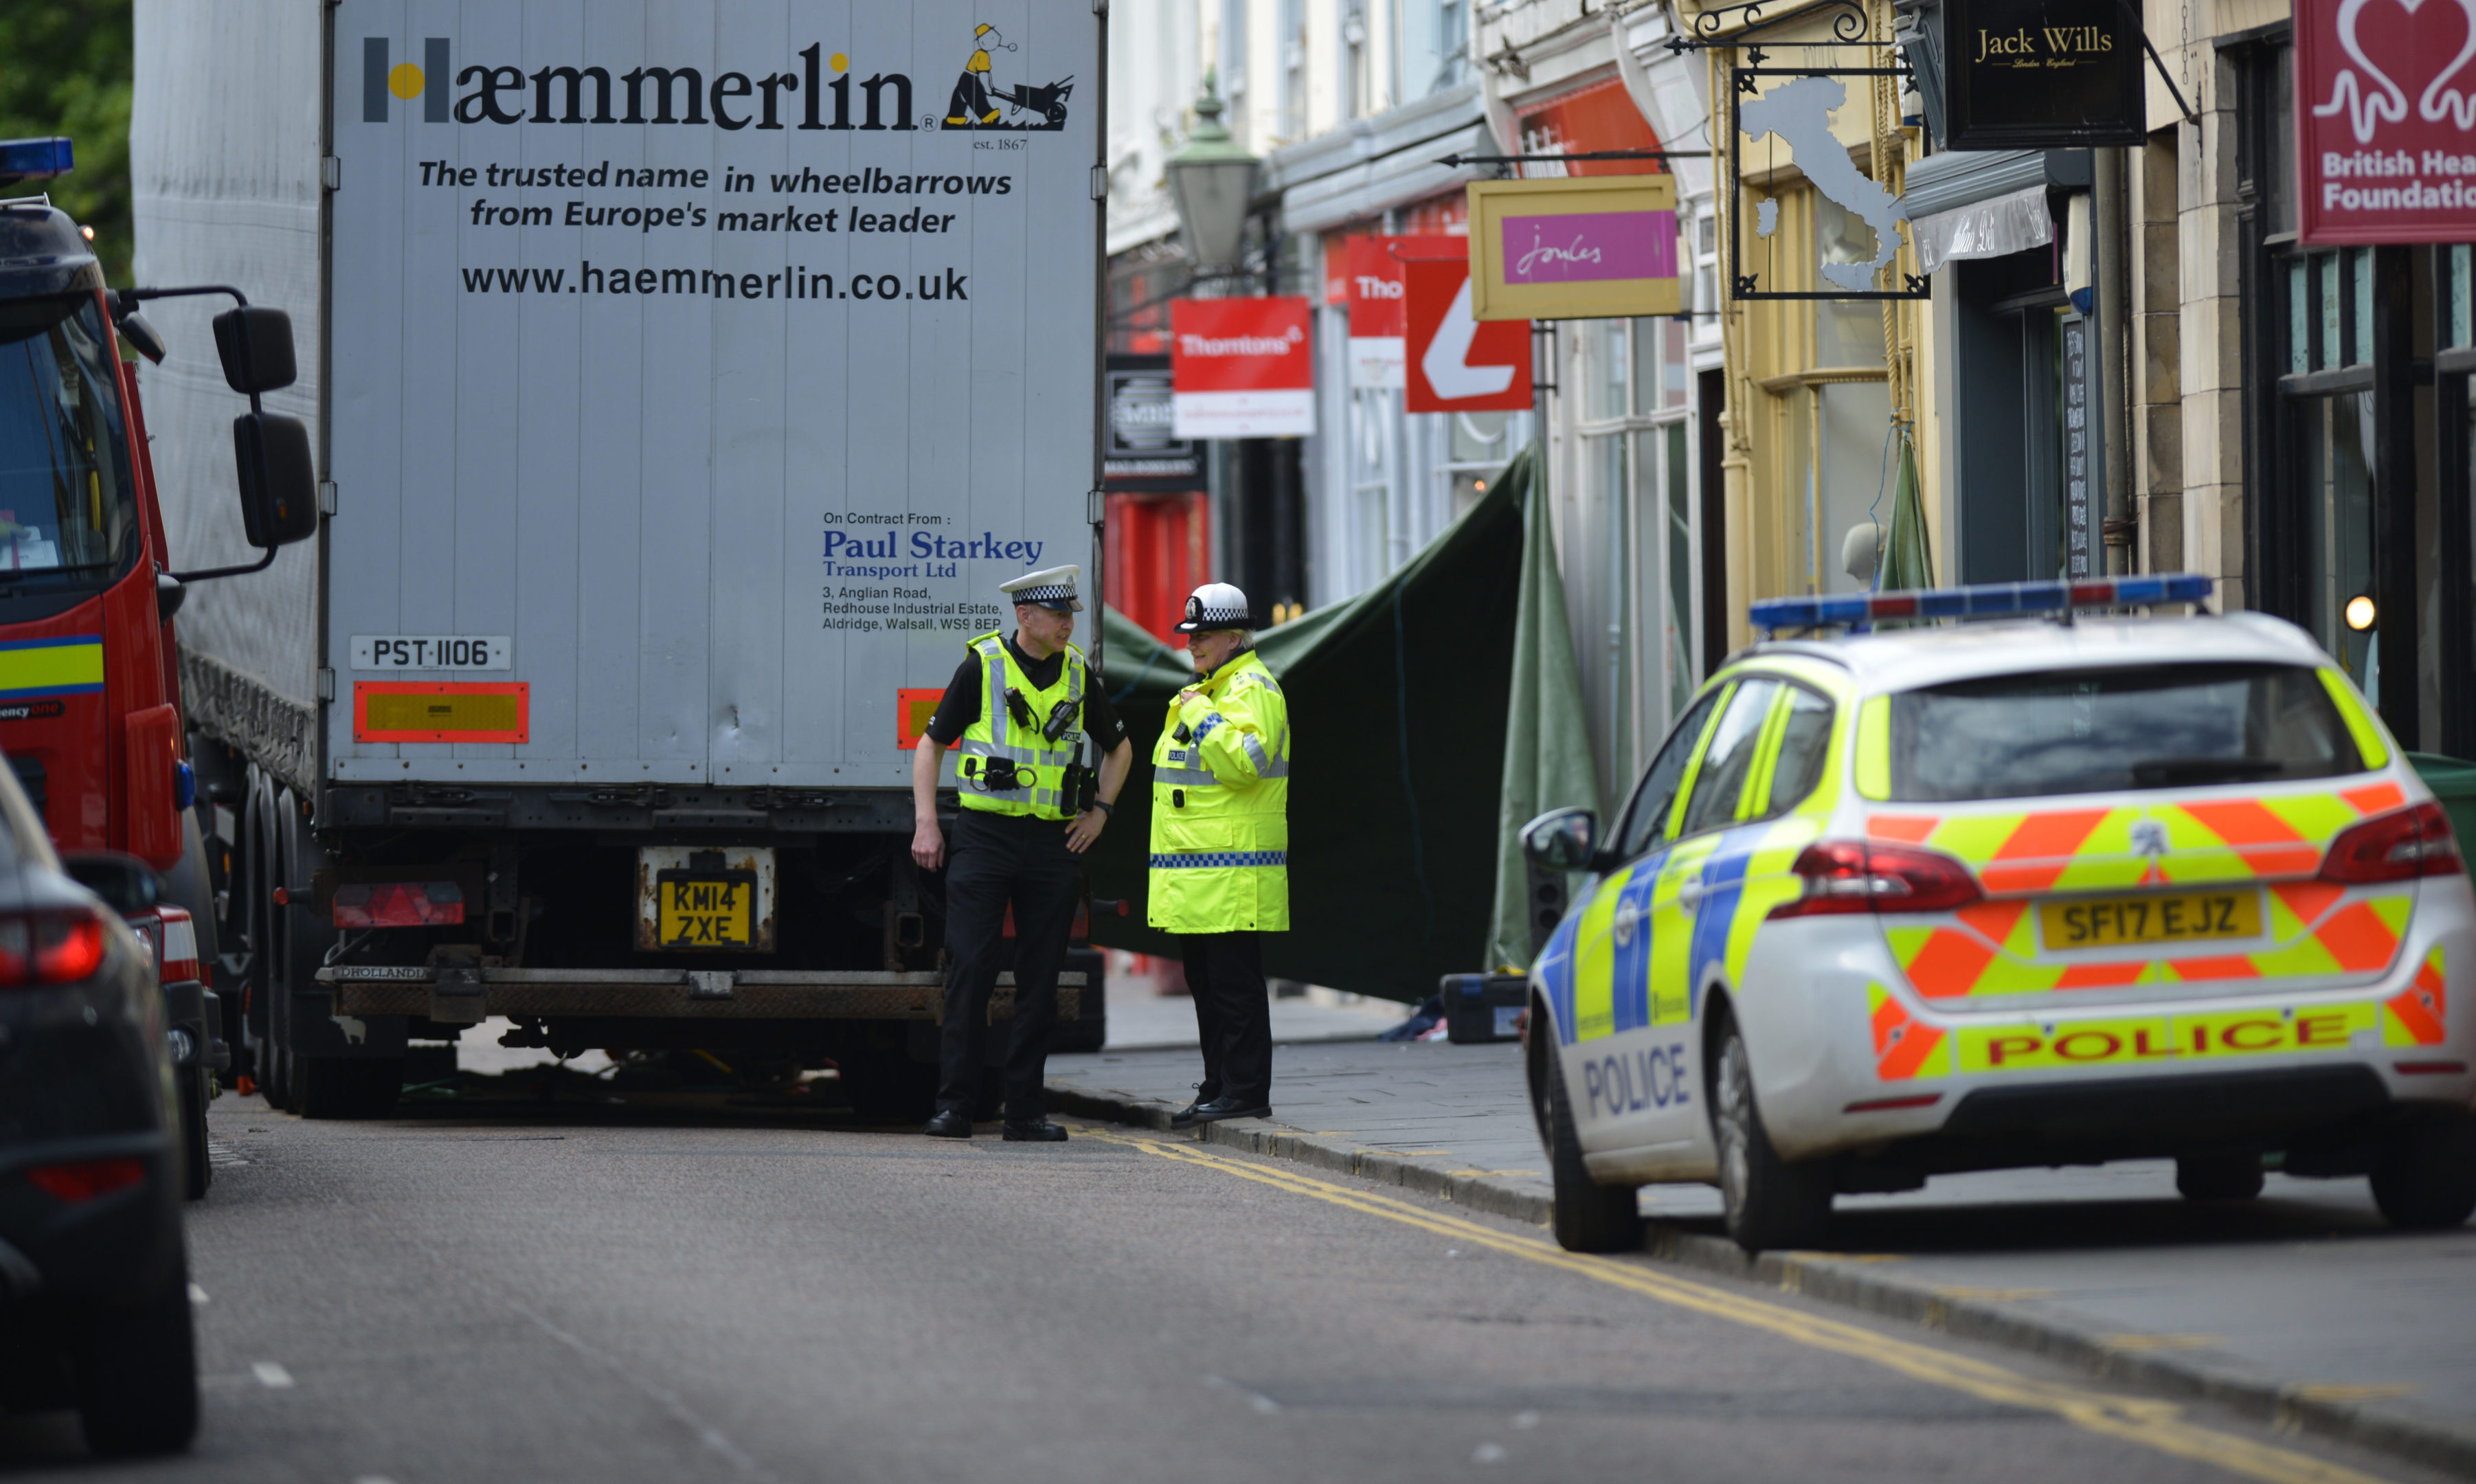 The scene of the incident on Bell Street, St Andrews.